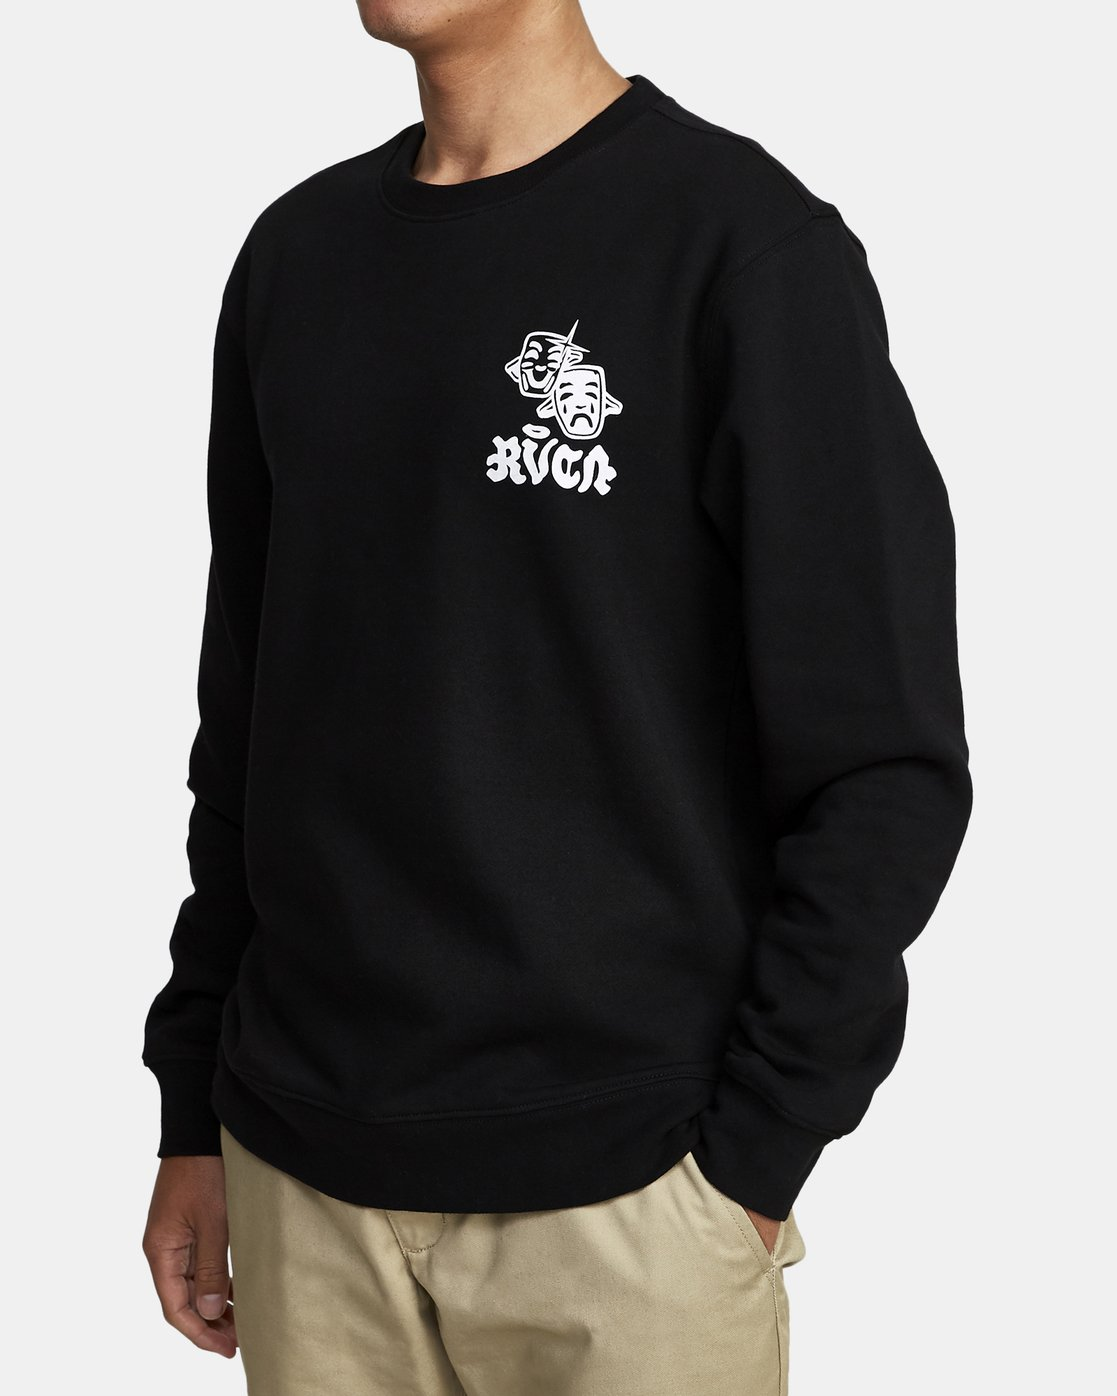 1 TRAGEDY CREW SWEATSHIRT Black M6082RTR RVCA